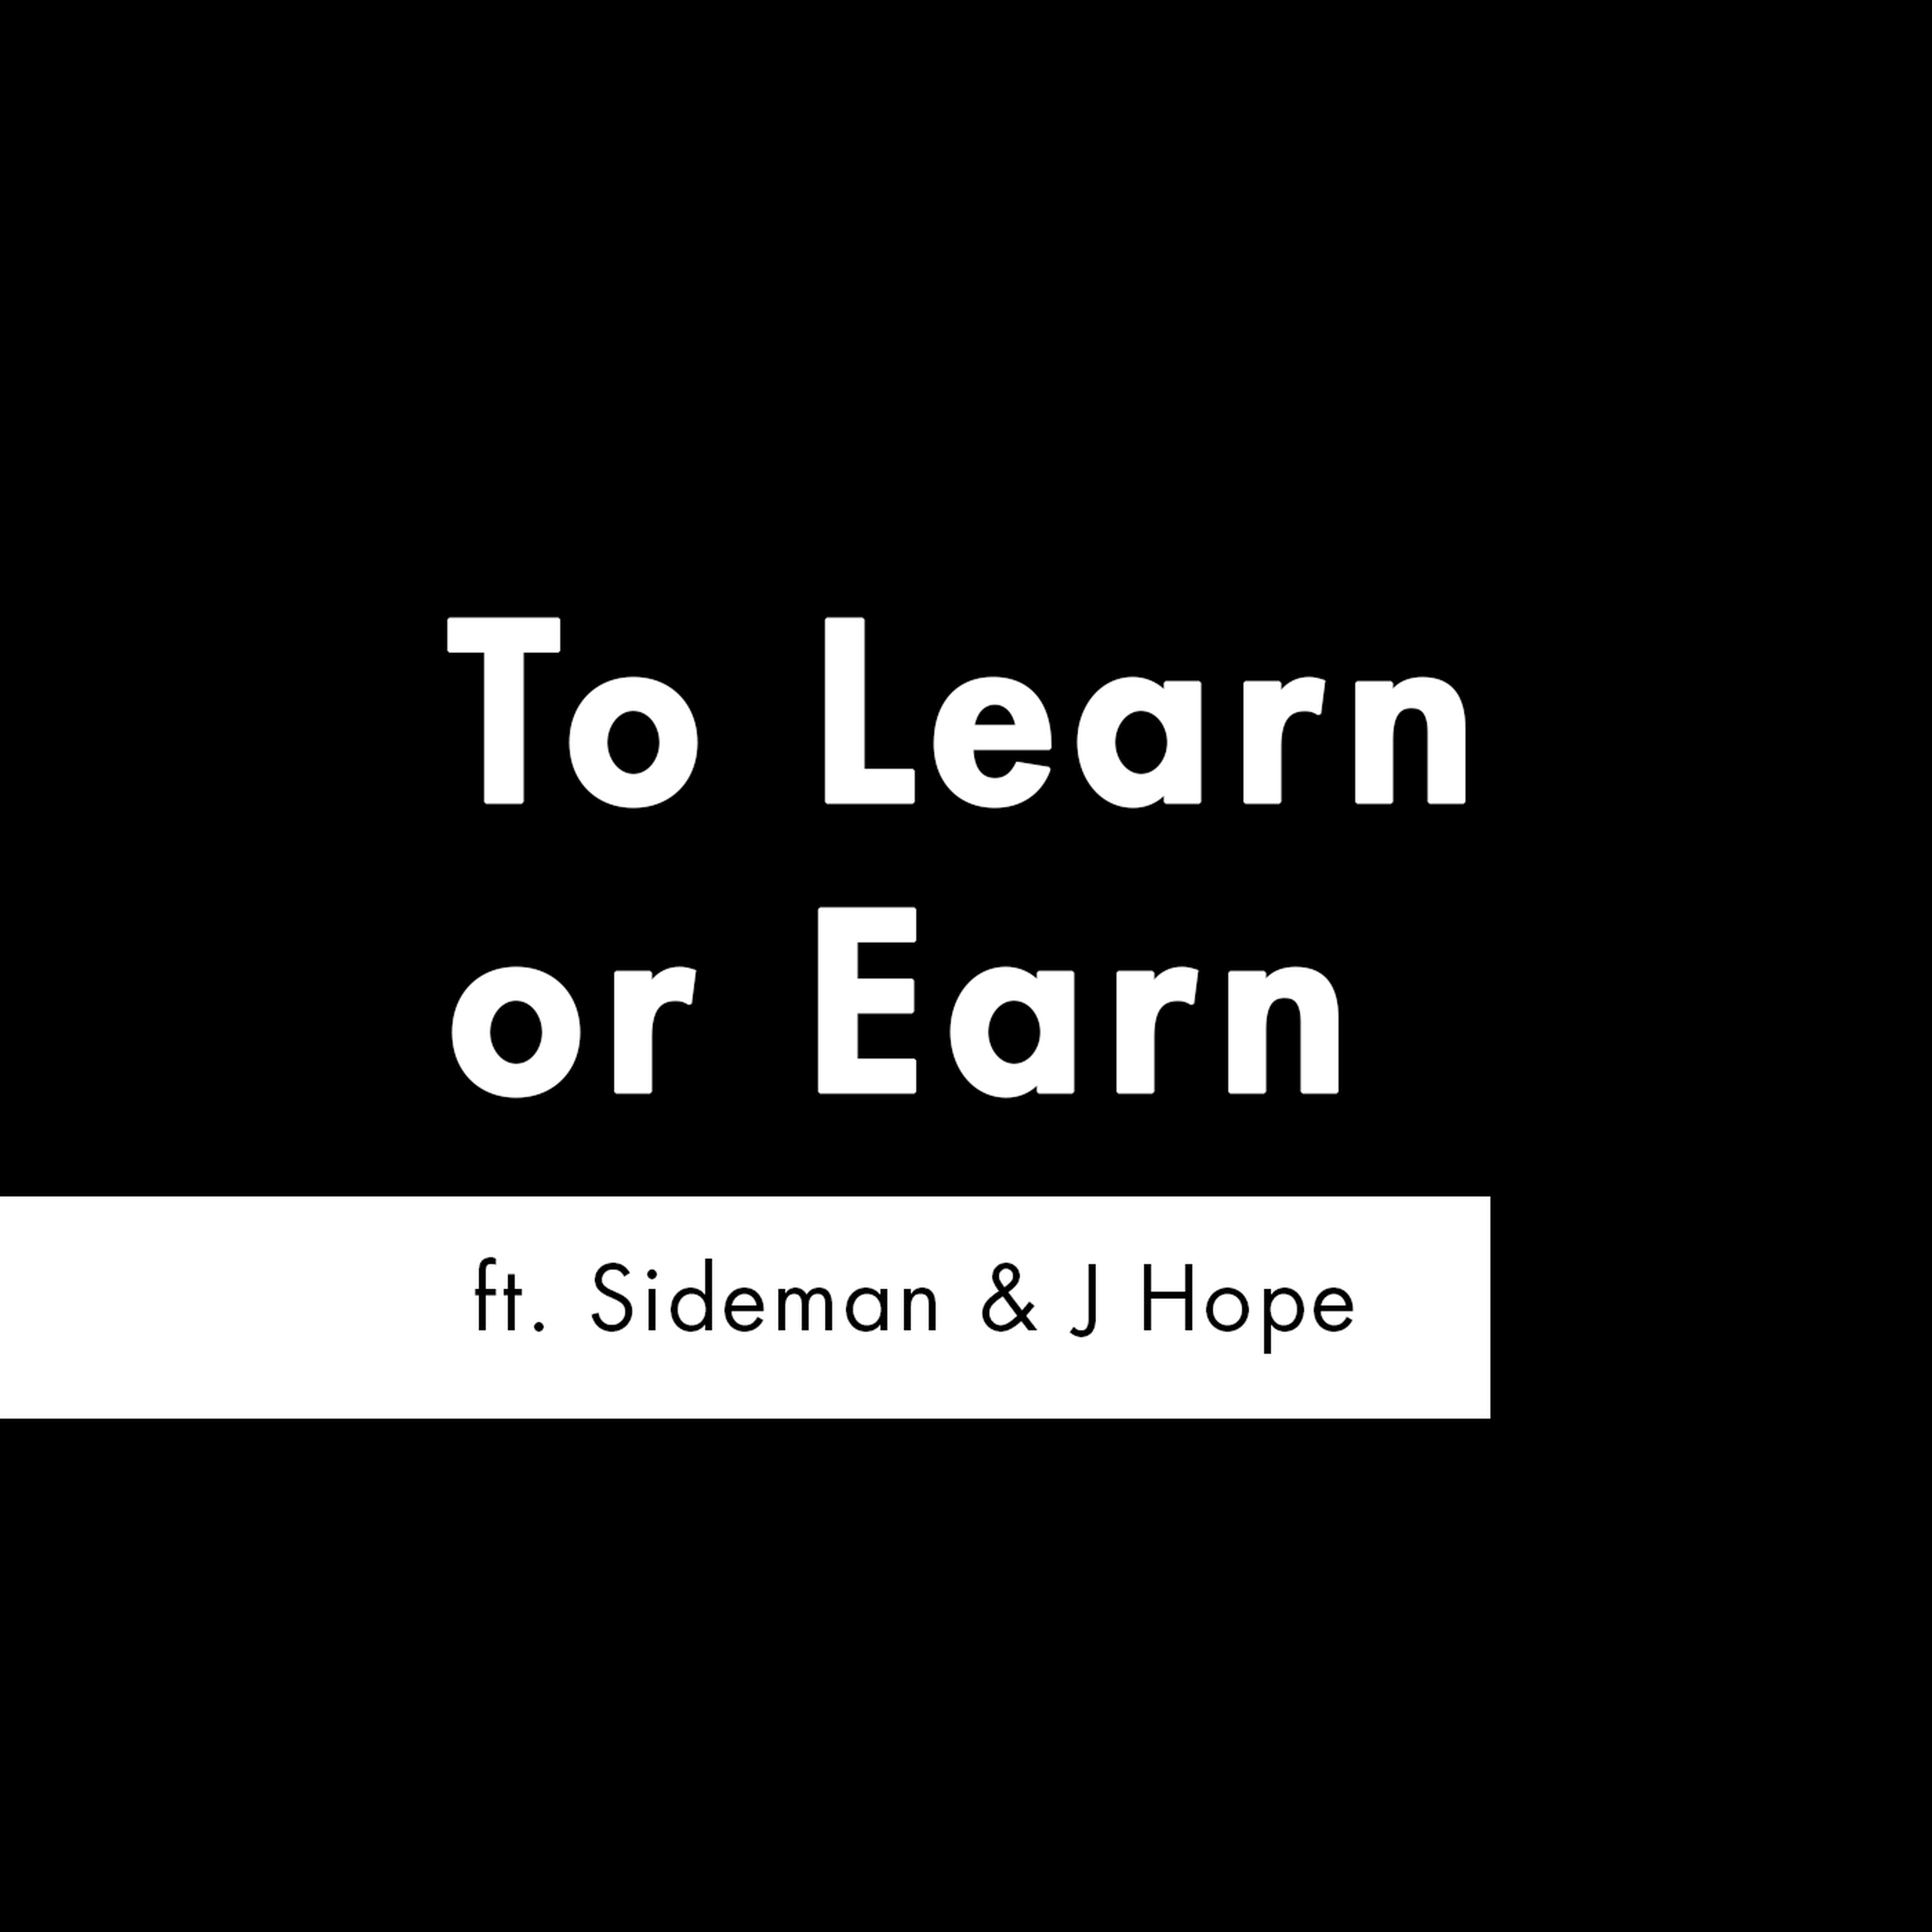 S2 E1 - 'To Learn or Earn' feat. Sideman & J Hope